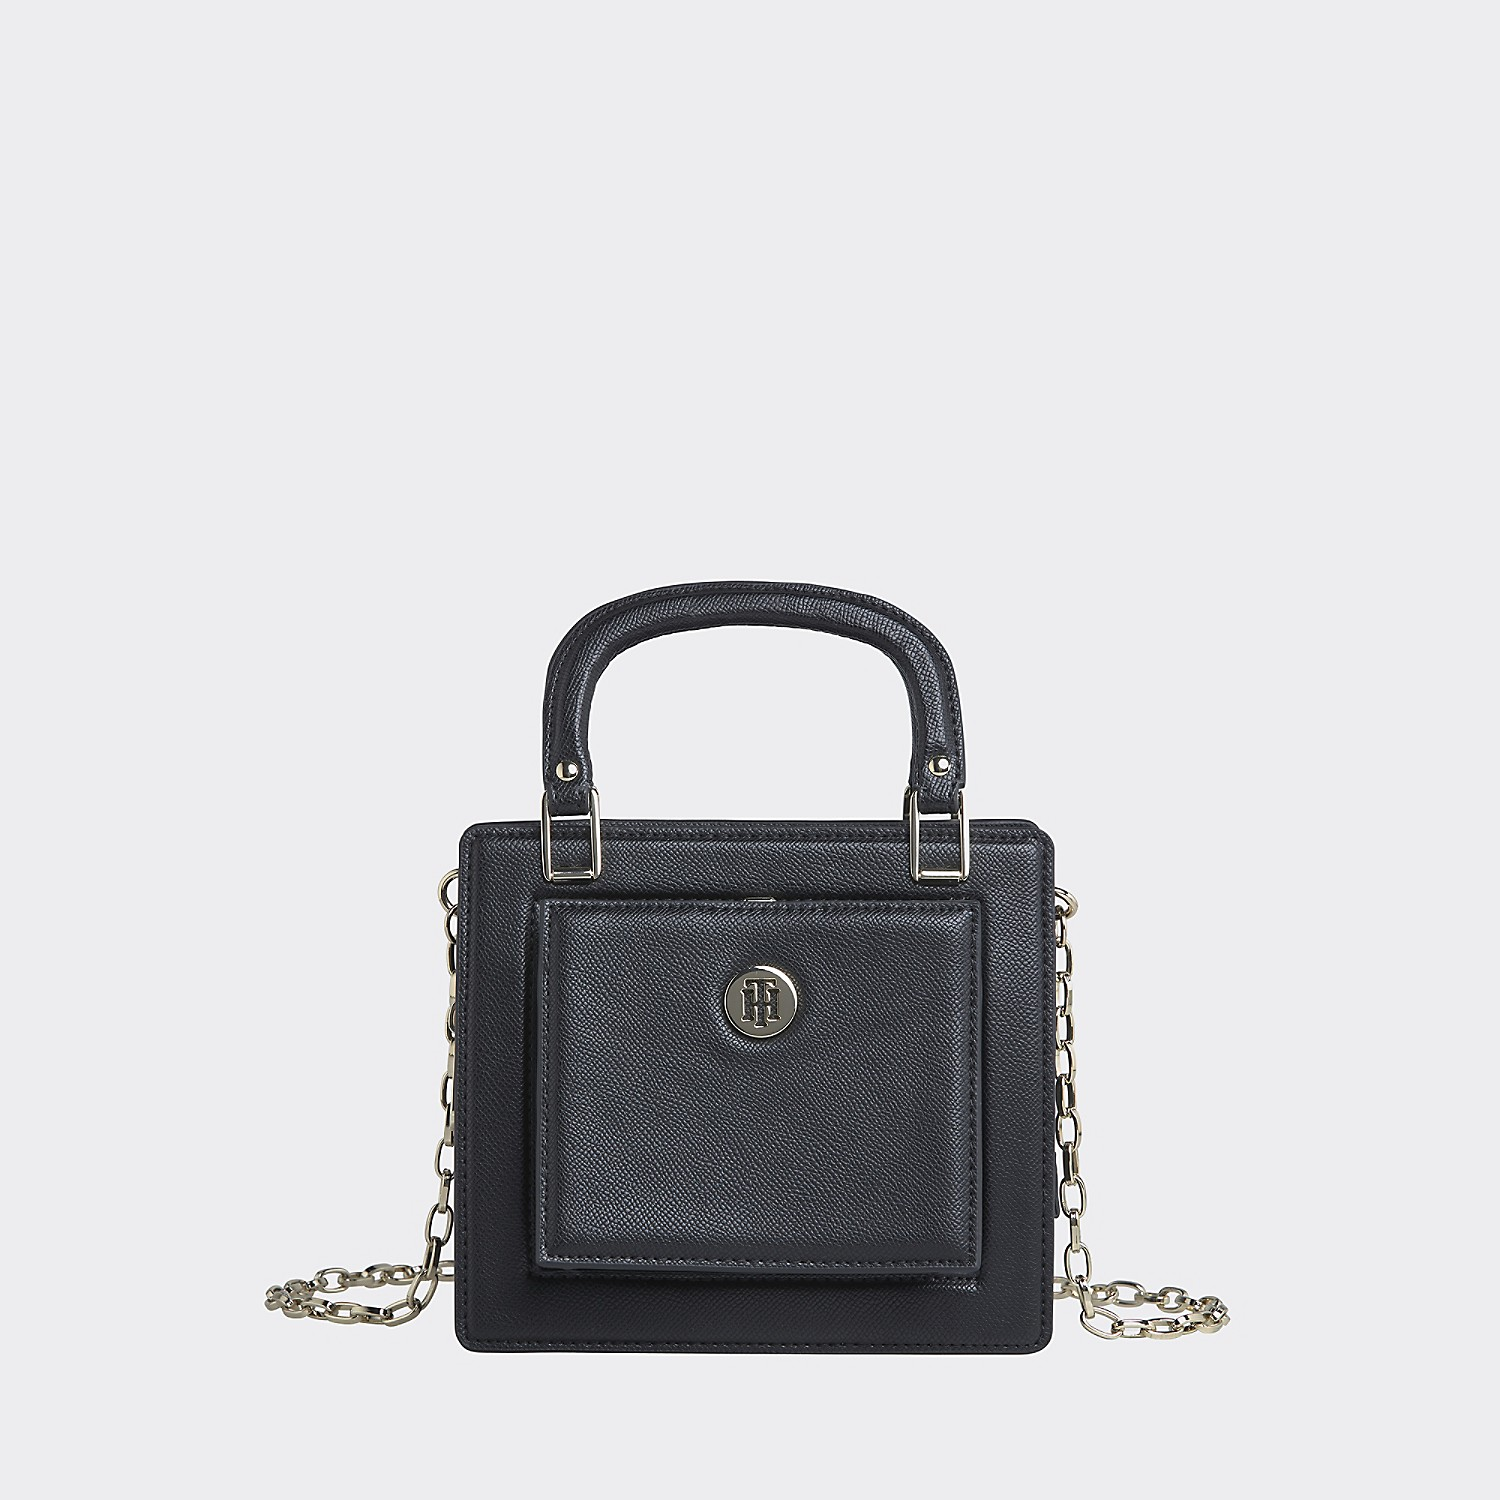 Tommy hilfiger Box Crossbody Bag